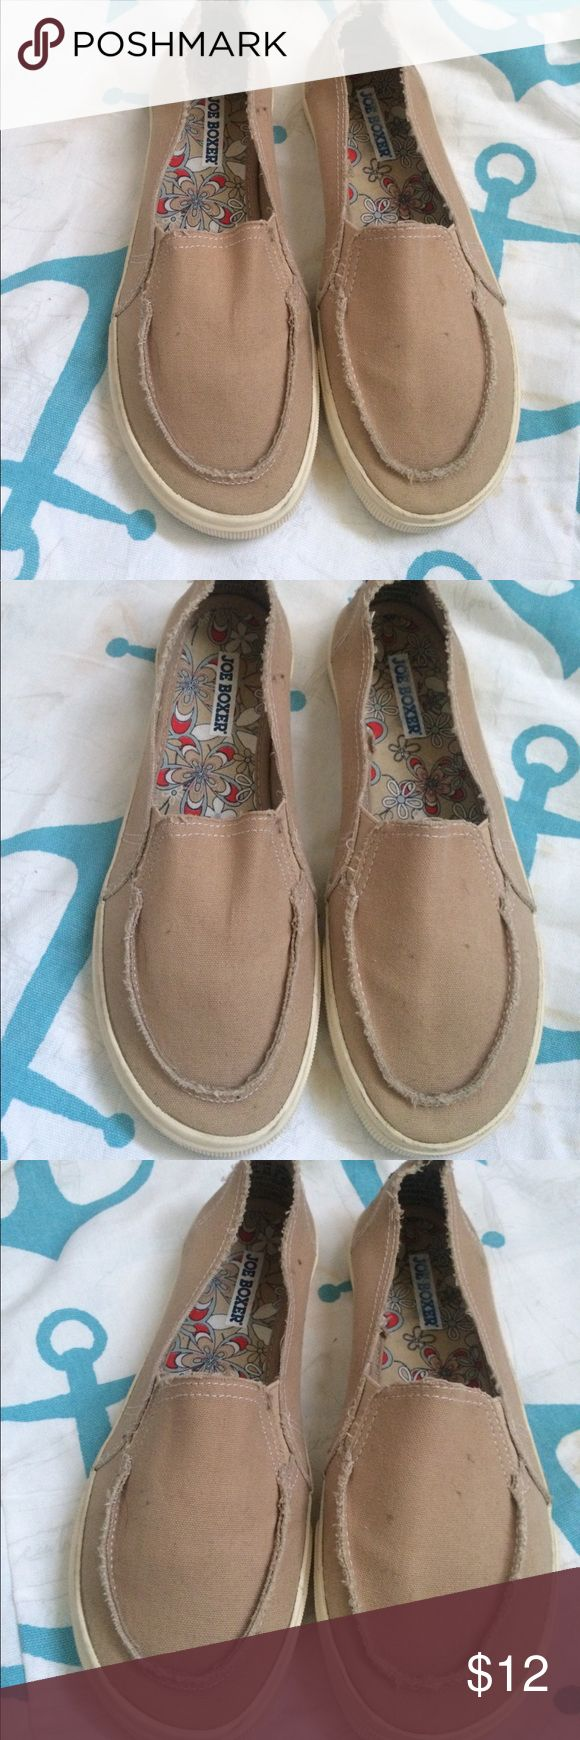 Joe Boxer Canvas Khaki Slip On Boat Shoes Size 7 Joe Boxer Pre Owned Khaki Canvas Slip On Great Tread & Soles Slip On Shoes Great for Outdoor Activities like Boating, Walking, Bicycling etc. Very Comfortable, Floral Fabric Lined Size 7 Joe Boxer Shoes Flats & Loafers